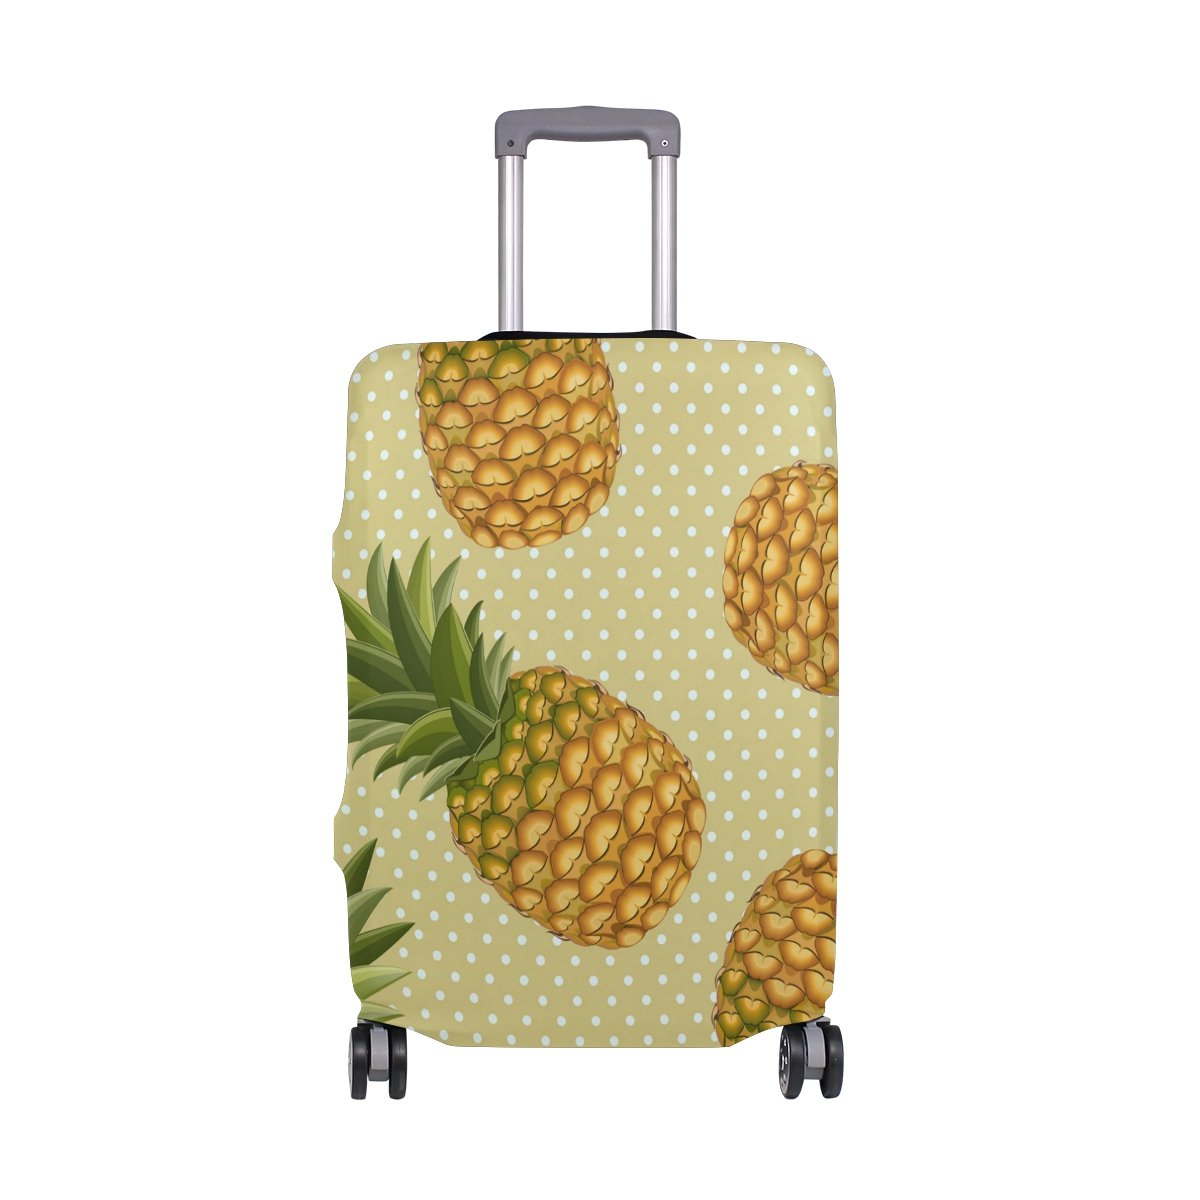 Summer Tropical Pineapples Polka Dots Suitcase Luggage Cover Protector for Travel Kids Men Women